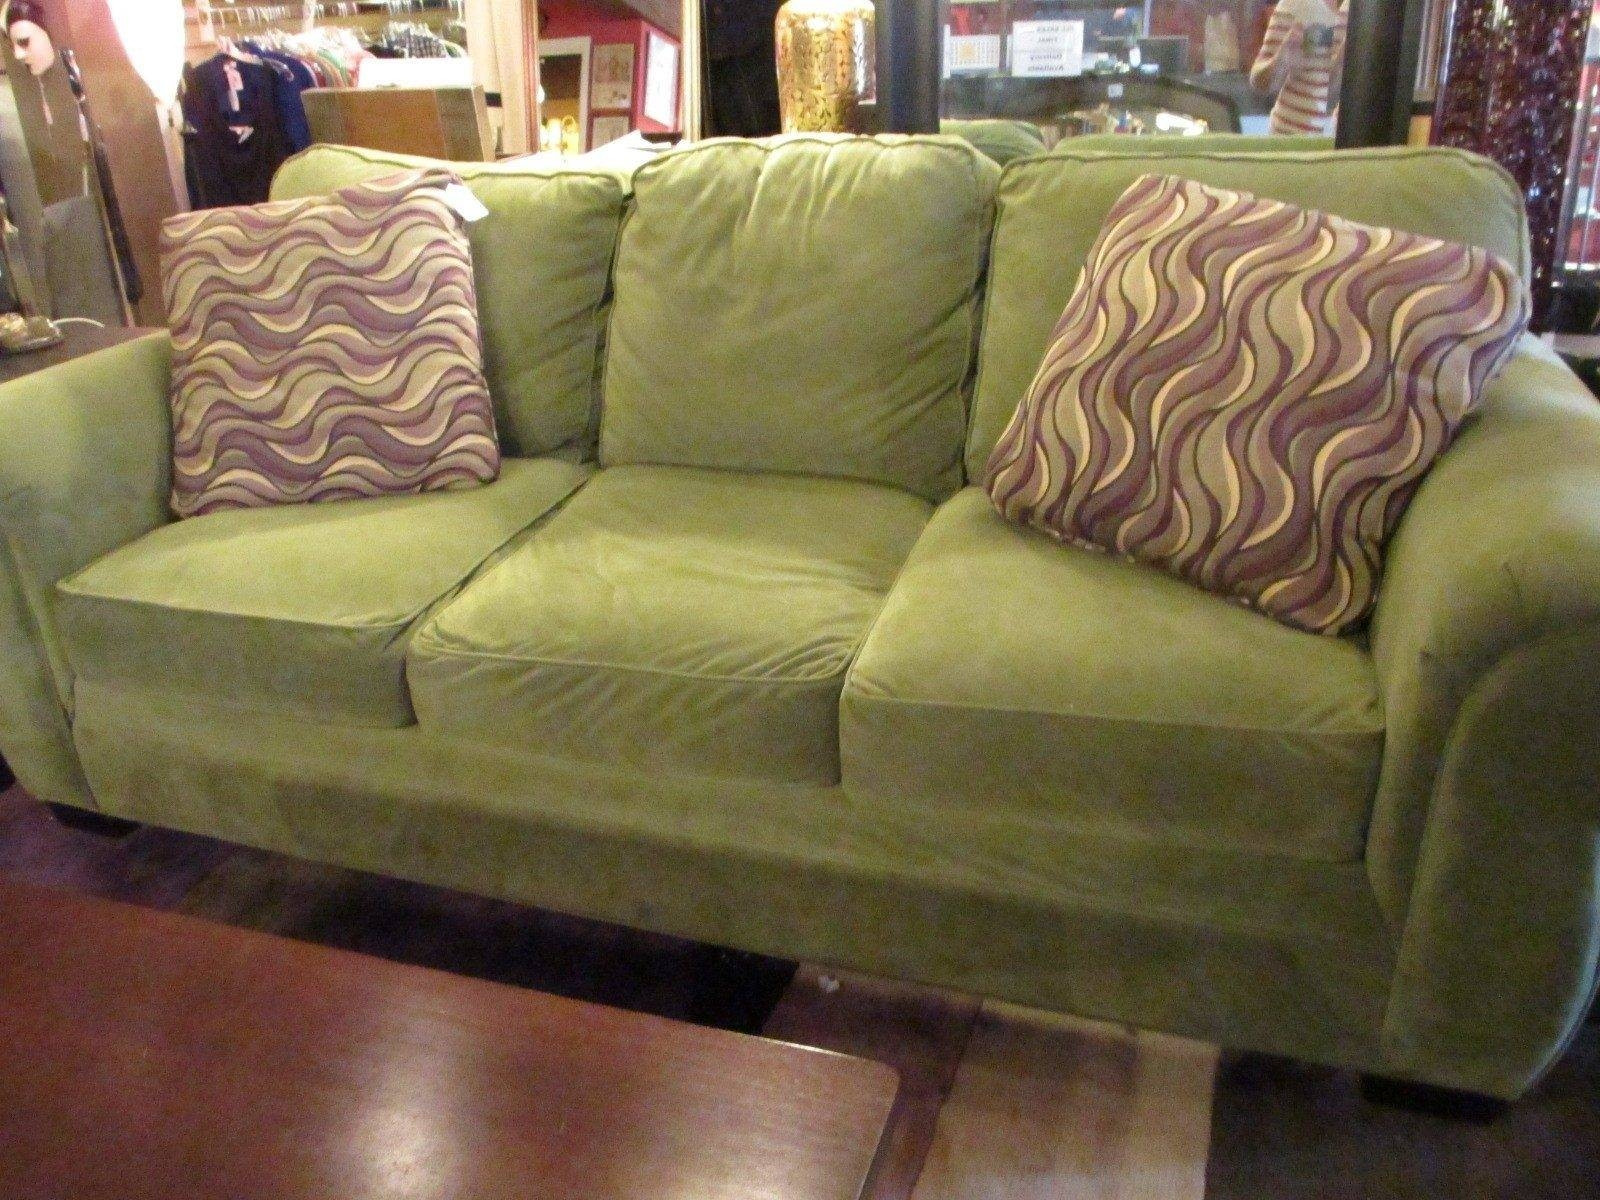 Lime Green Sectional Sofa ~ Hmmi intended for Olive Green Sectional Sofas (Image 6 of 15)